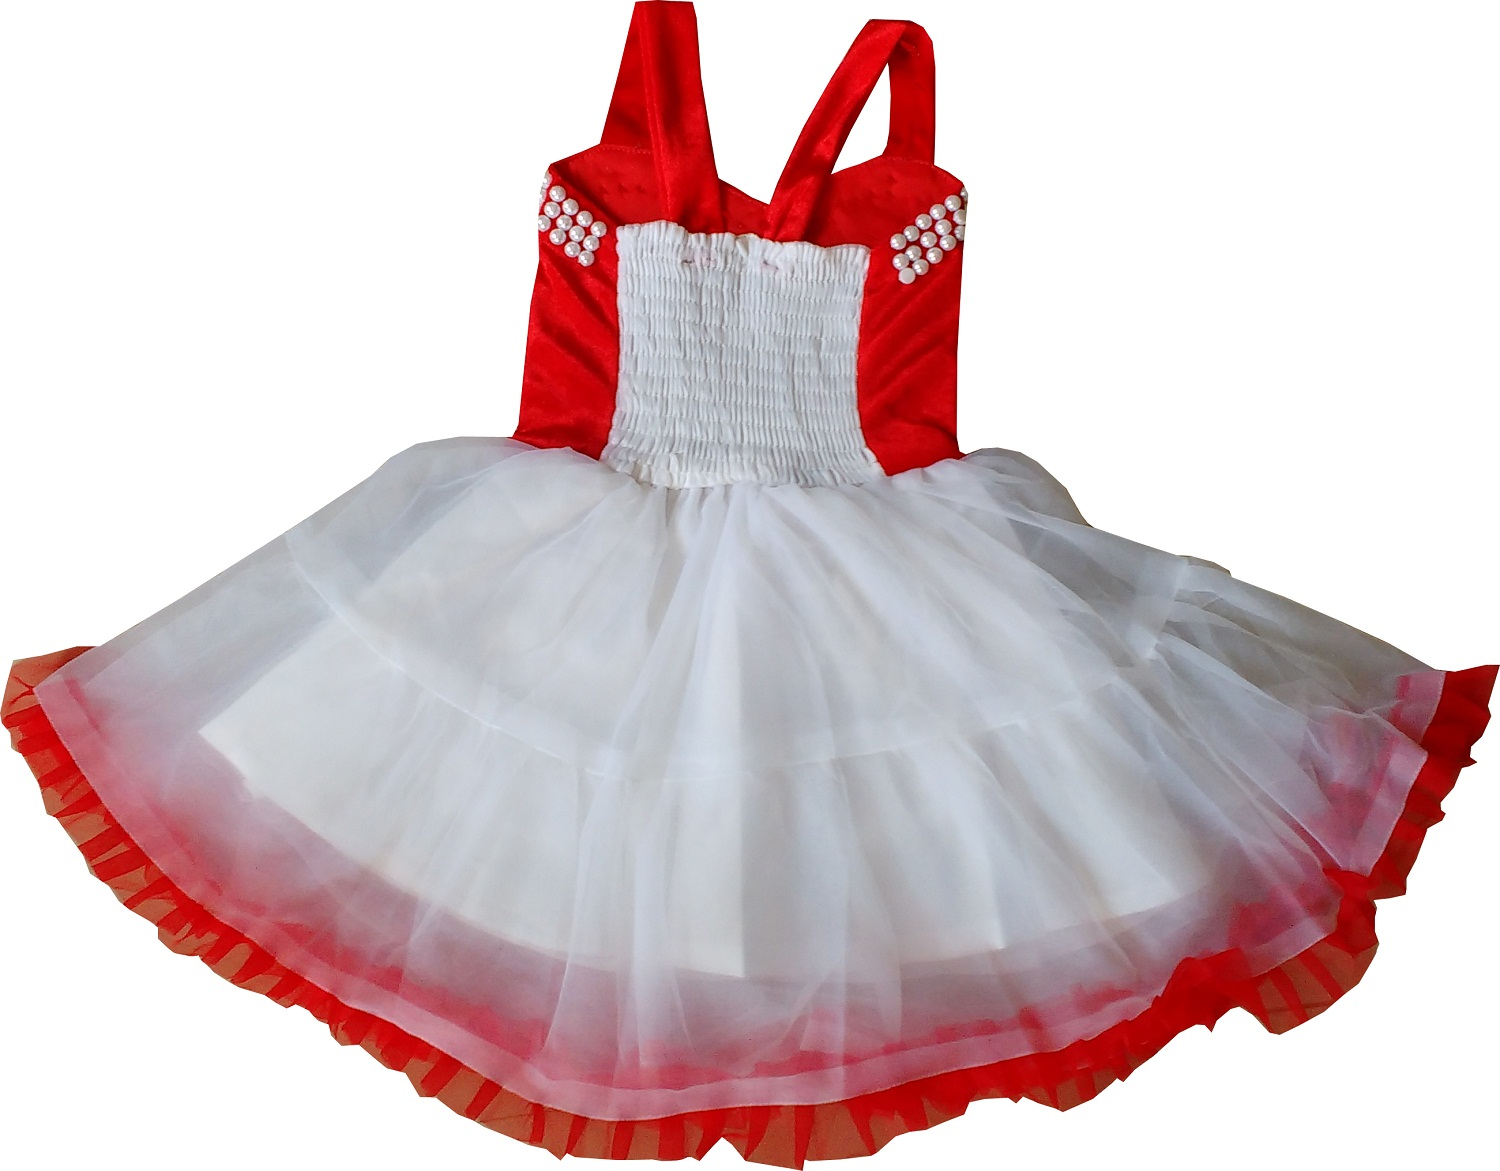 5d7bbbde0 Cute Fashion Kids Girls Baby Princess Red Party Wear Flower Dresses ...